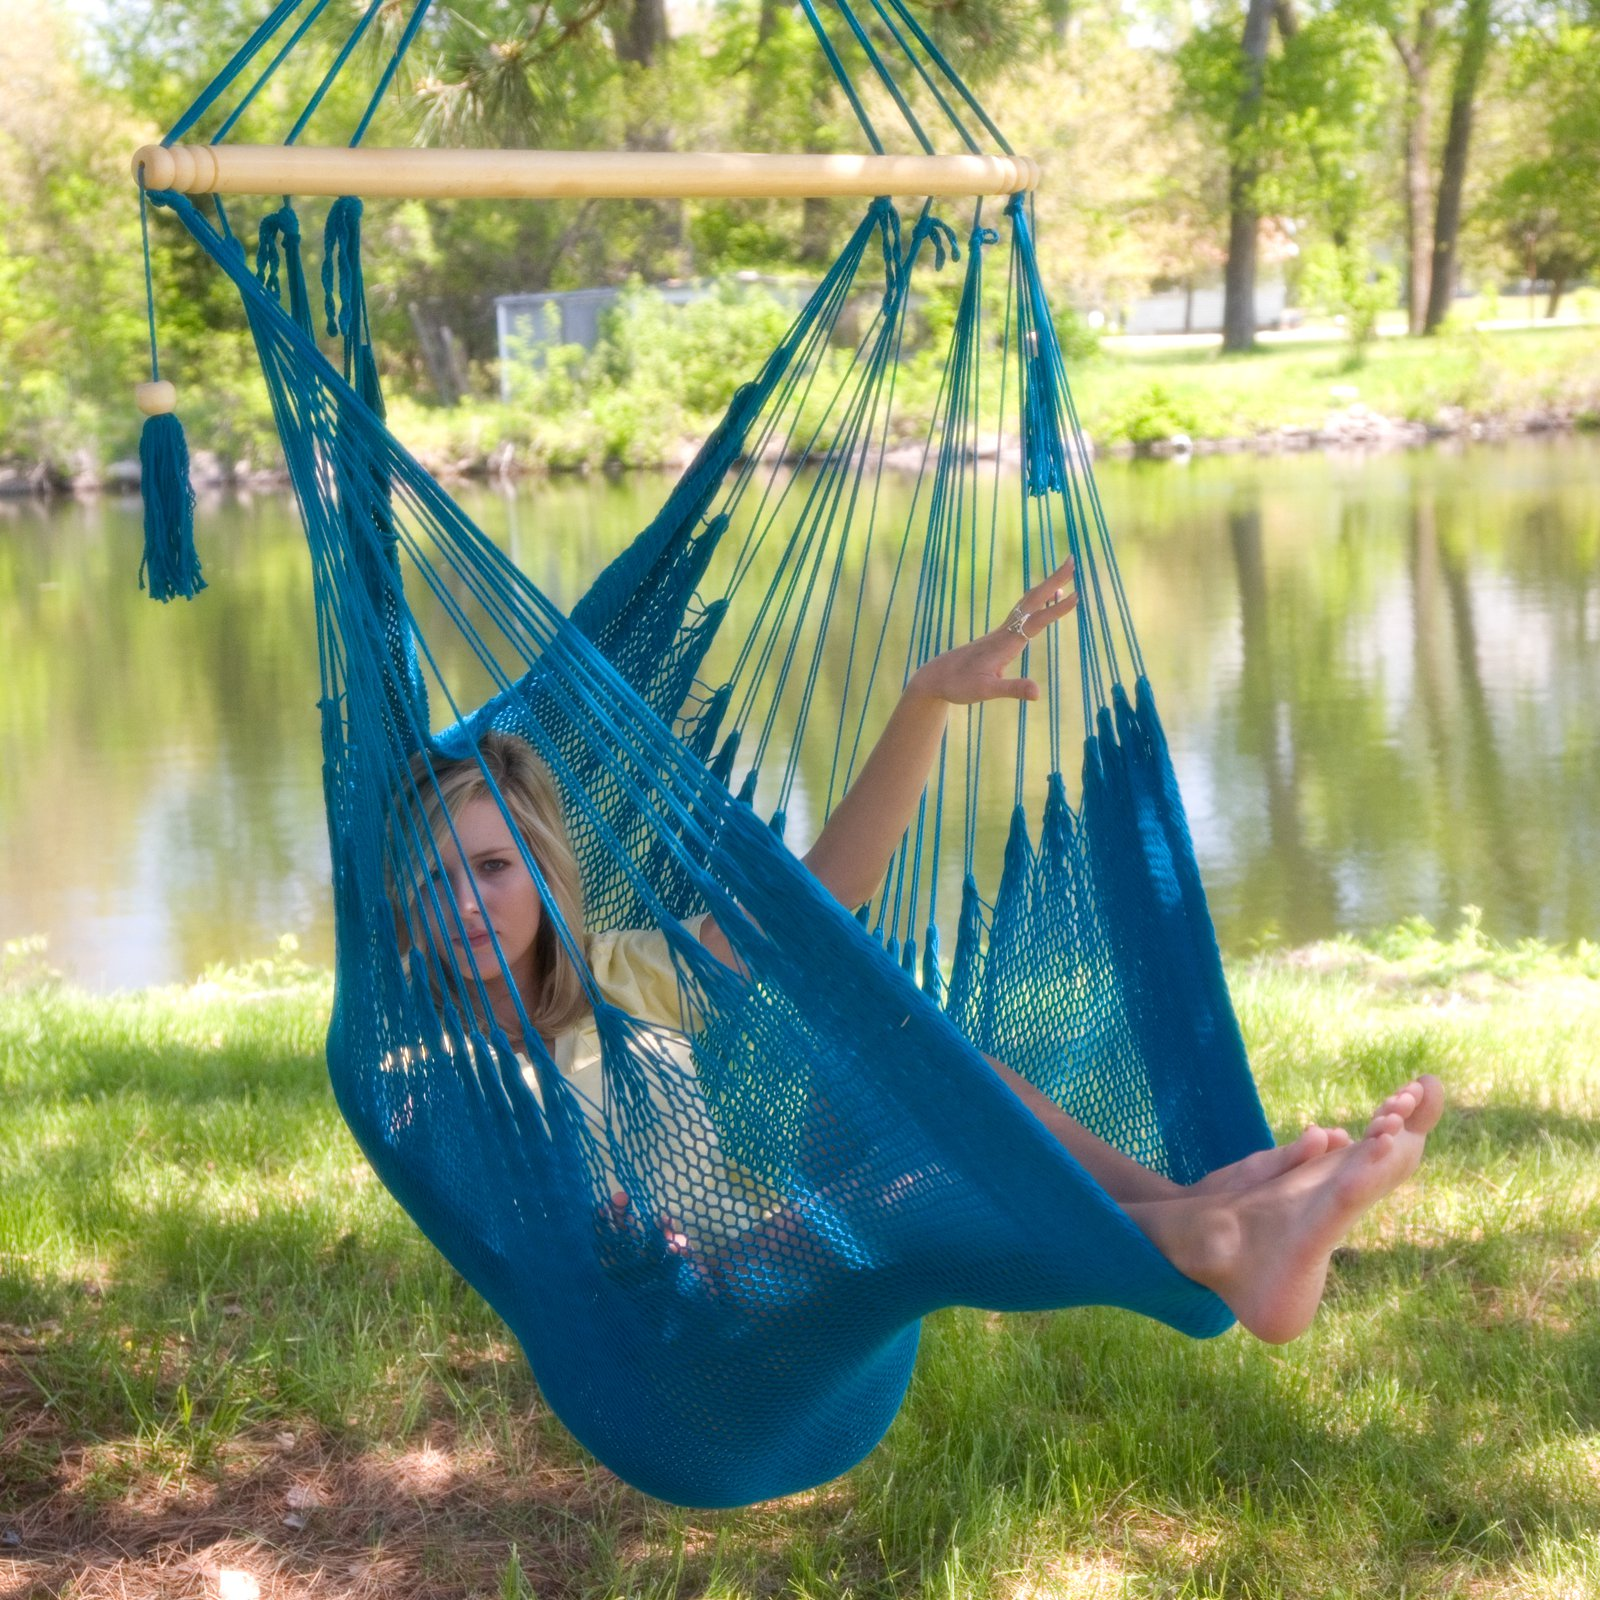 How To Make A Hammock Chair Choosing A Hammock Chair For Your Backyard Ideas 4 Homes